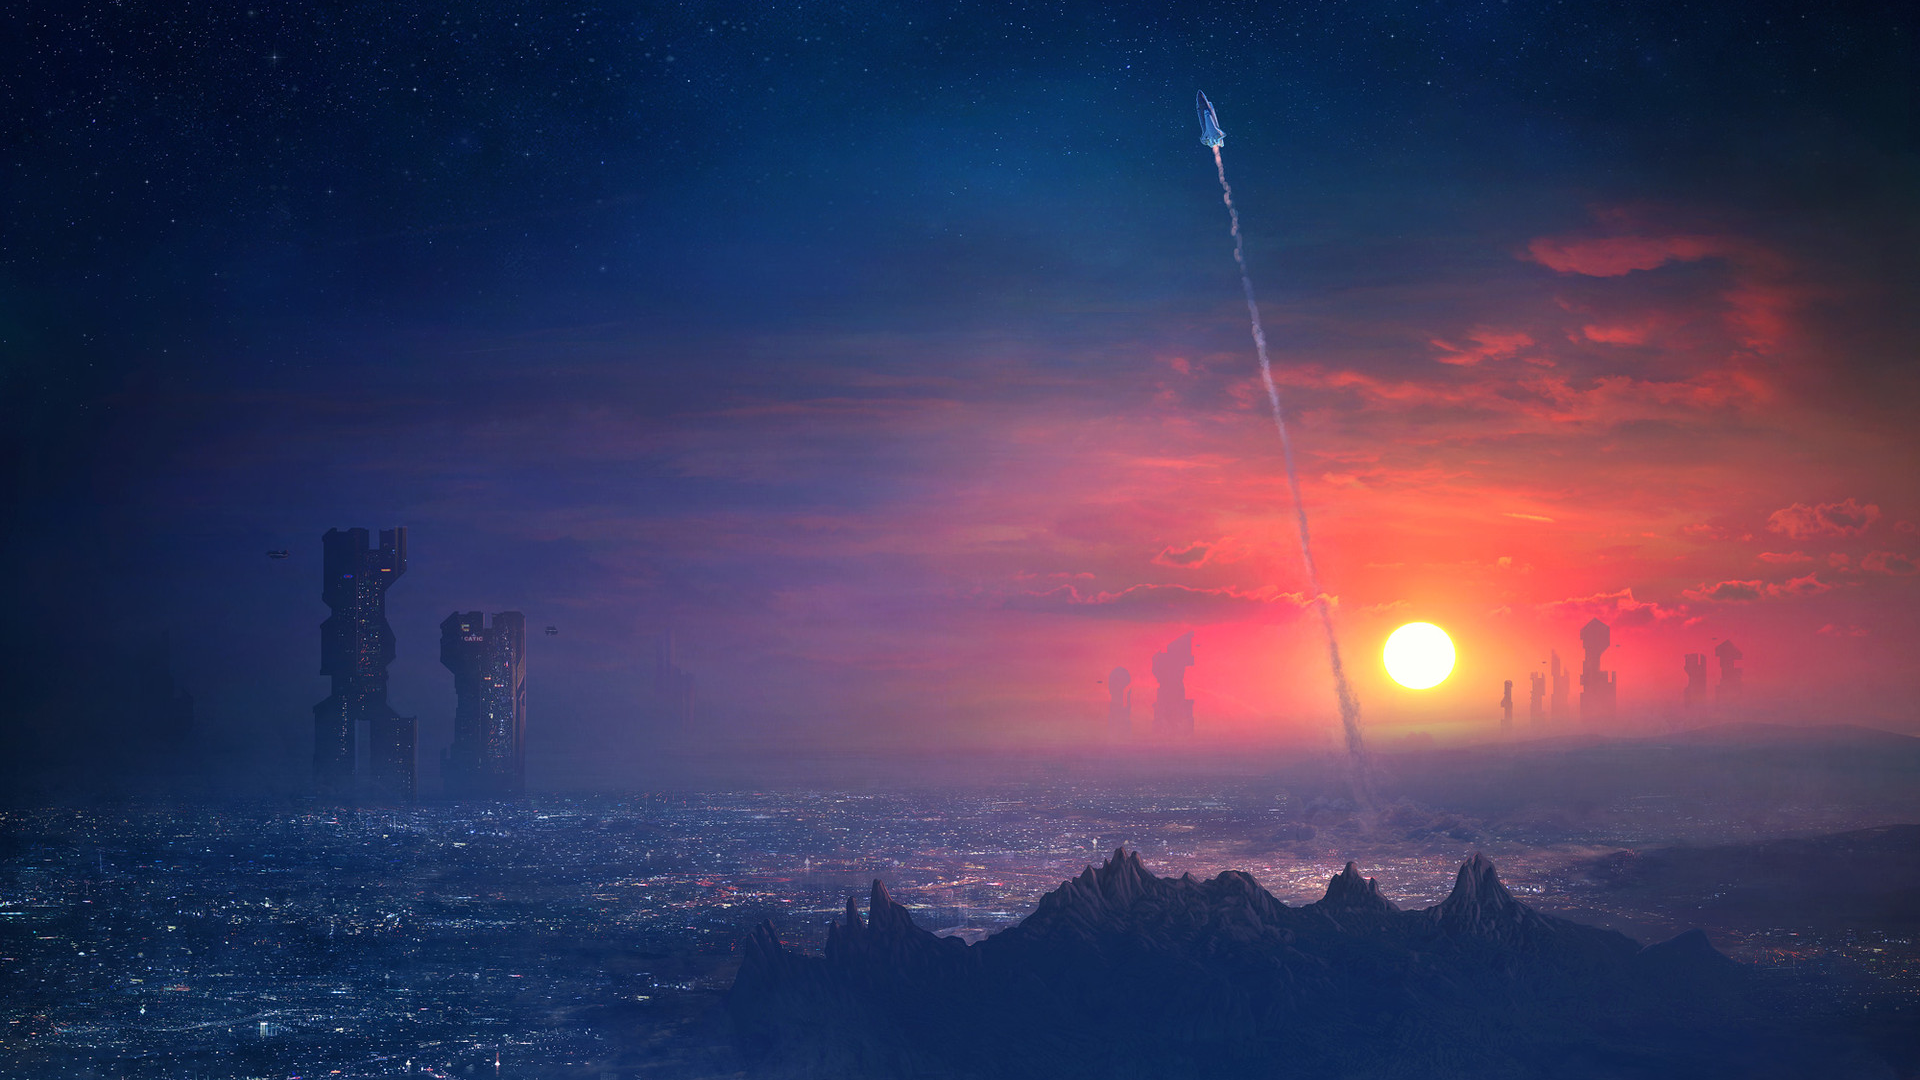 General 1920x1080 Guillem H. Pongiluppi digital art artwork rocket landscape sunset sea stars night sky futuristic architecture